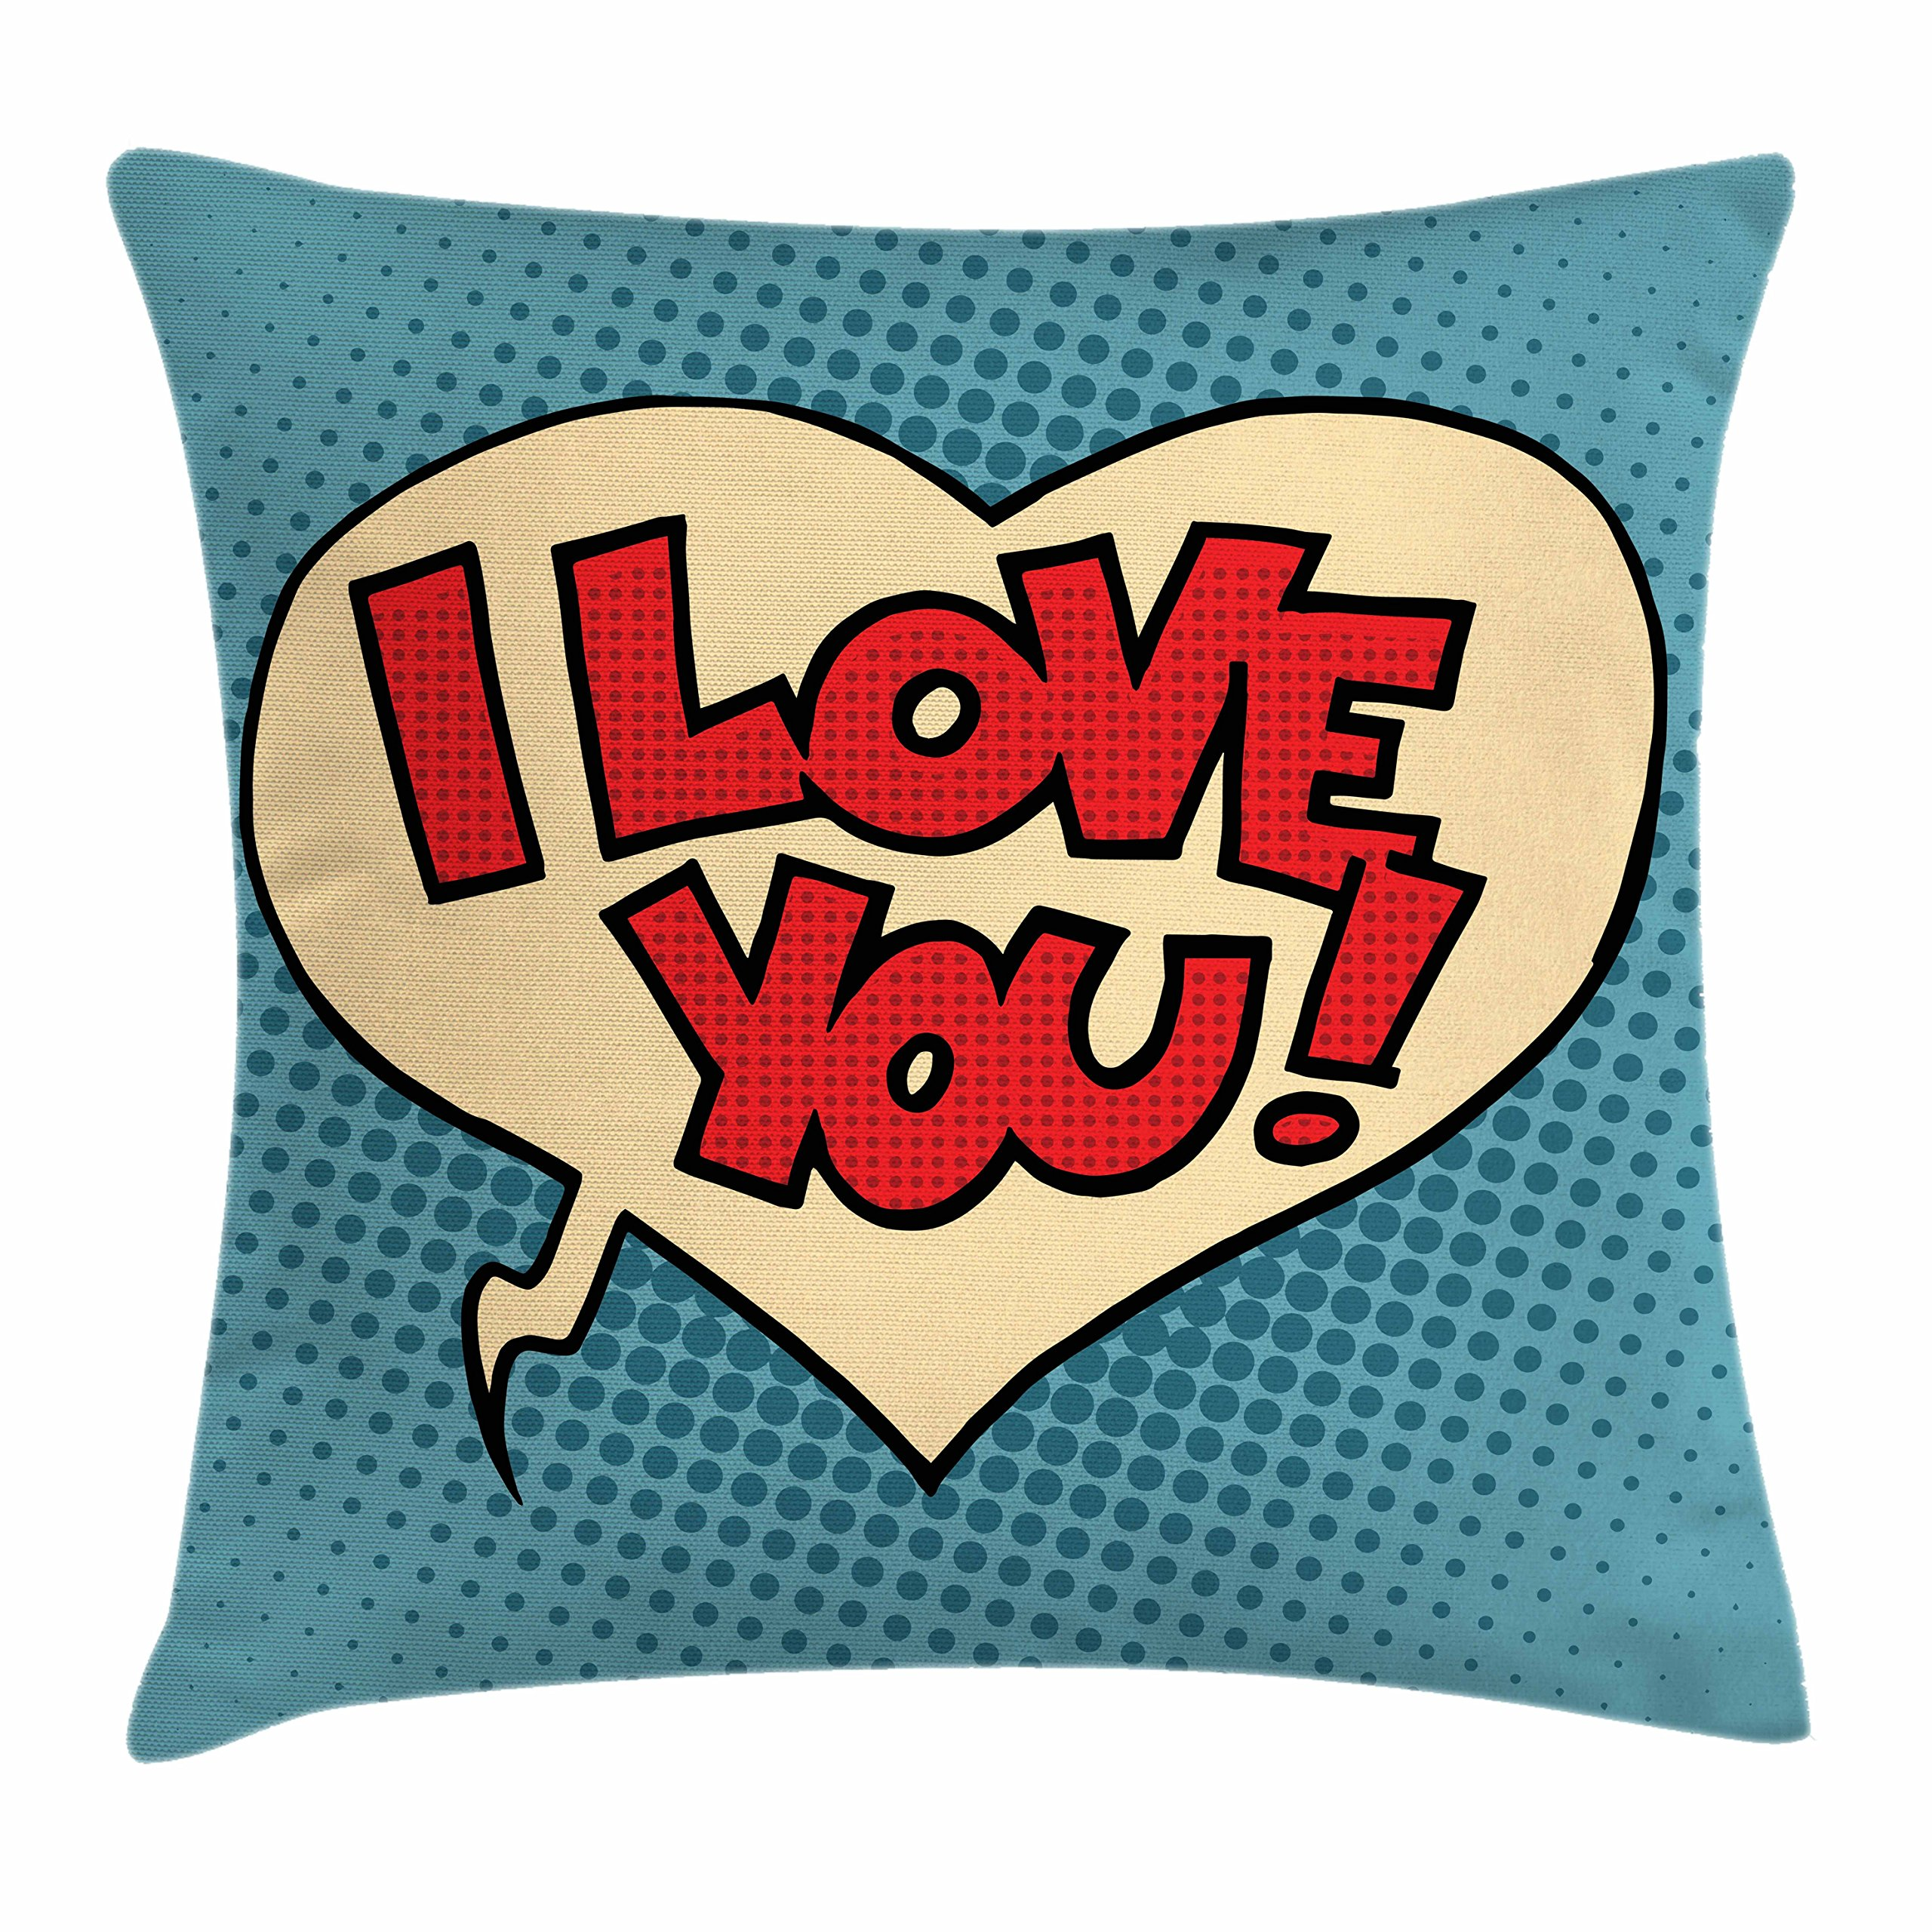 Ambesonne I Love You Throw Pillow Cushion Cover, Pop Style Comic Strip Valentine's Bubble Artistic Cartoon Graphic, Decorative Square Accent Pillow Case, 18 X 18 inches, Petrol Blue Red Ivory